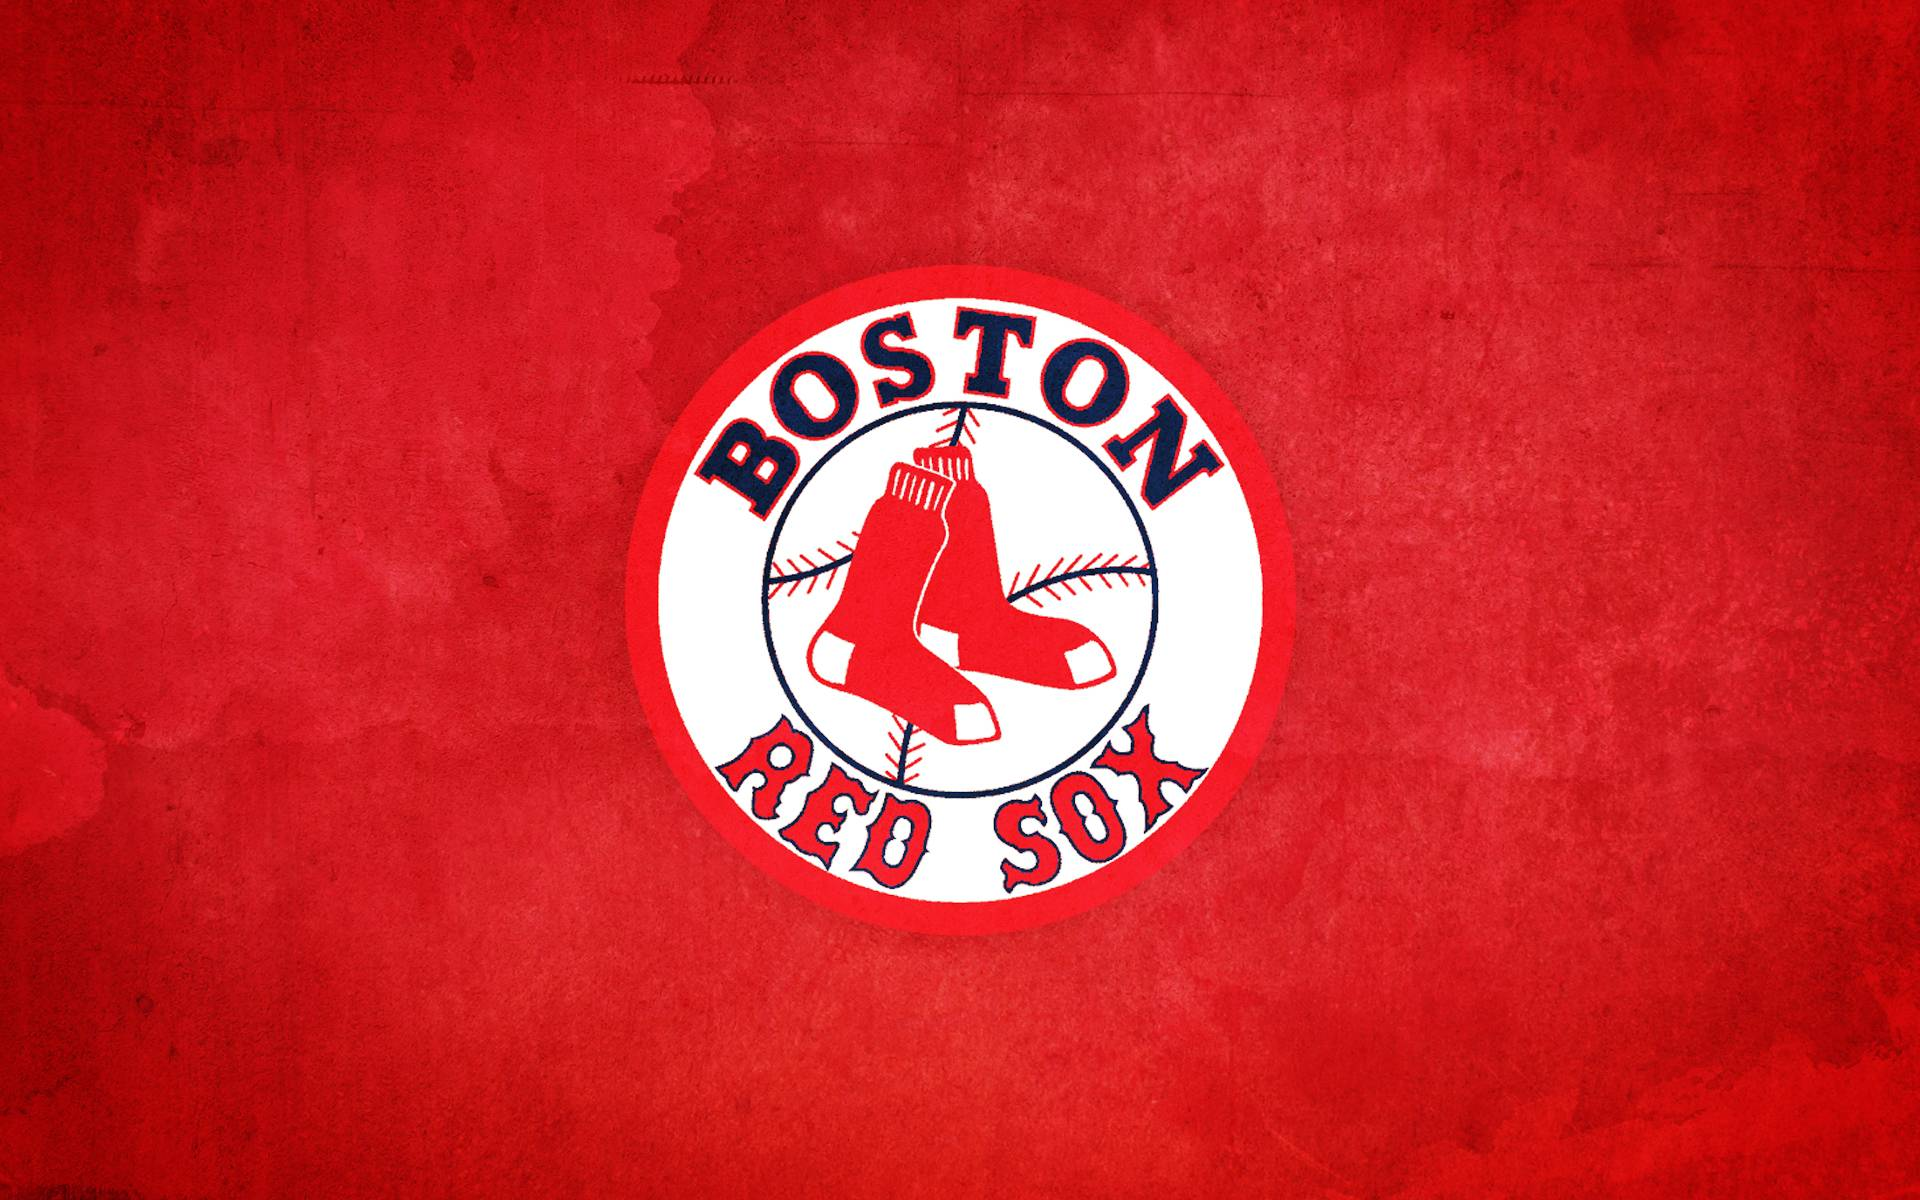 1920x1200 - Boston Red Sox Wallpaper Screensavers 25